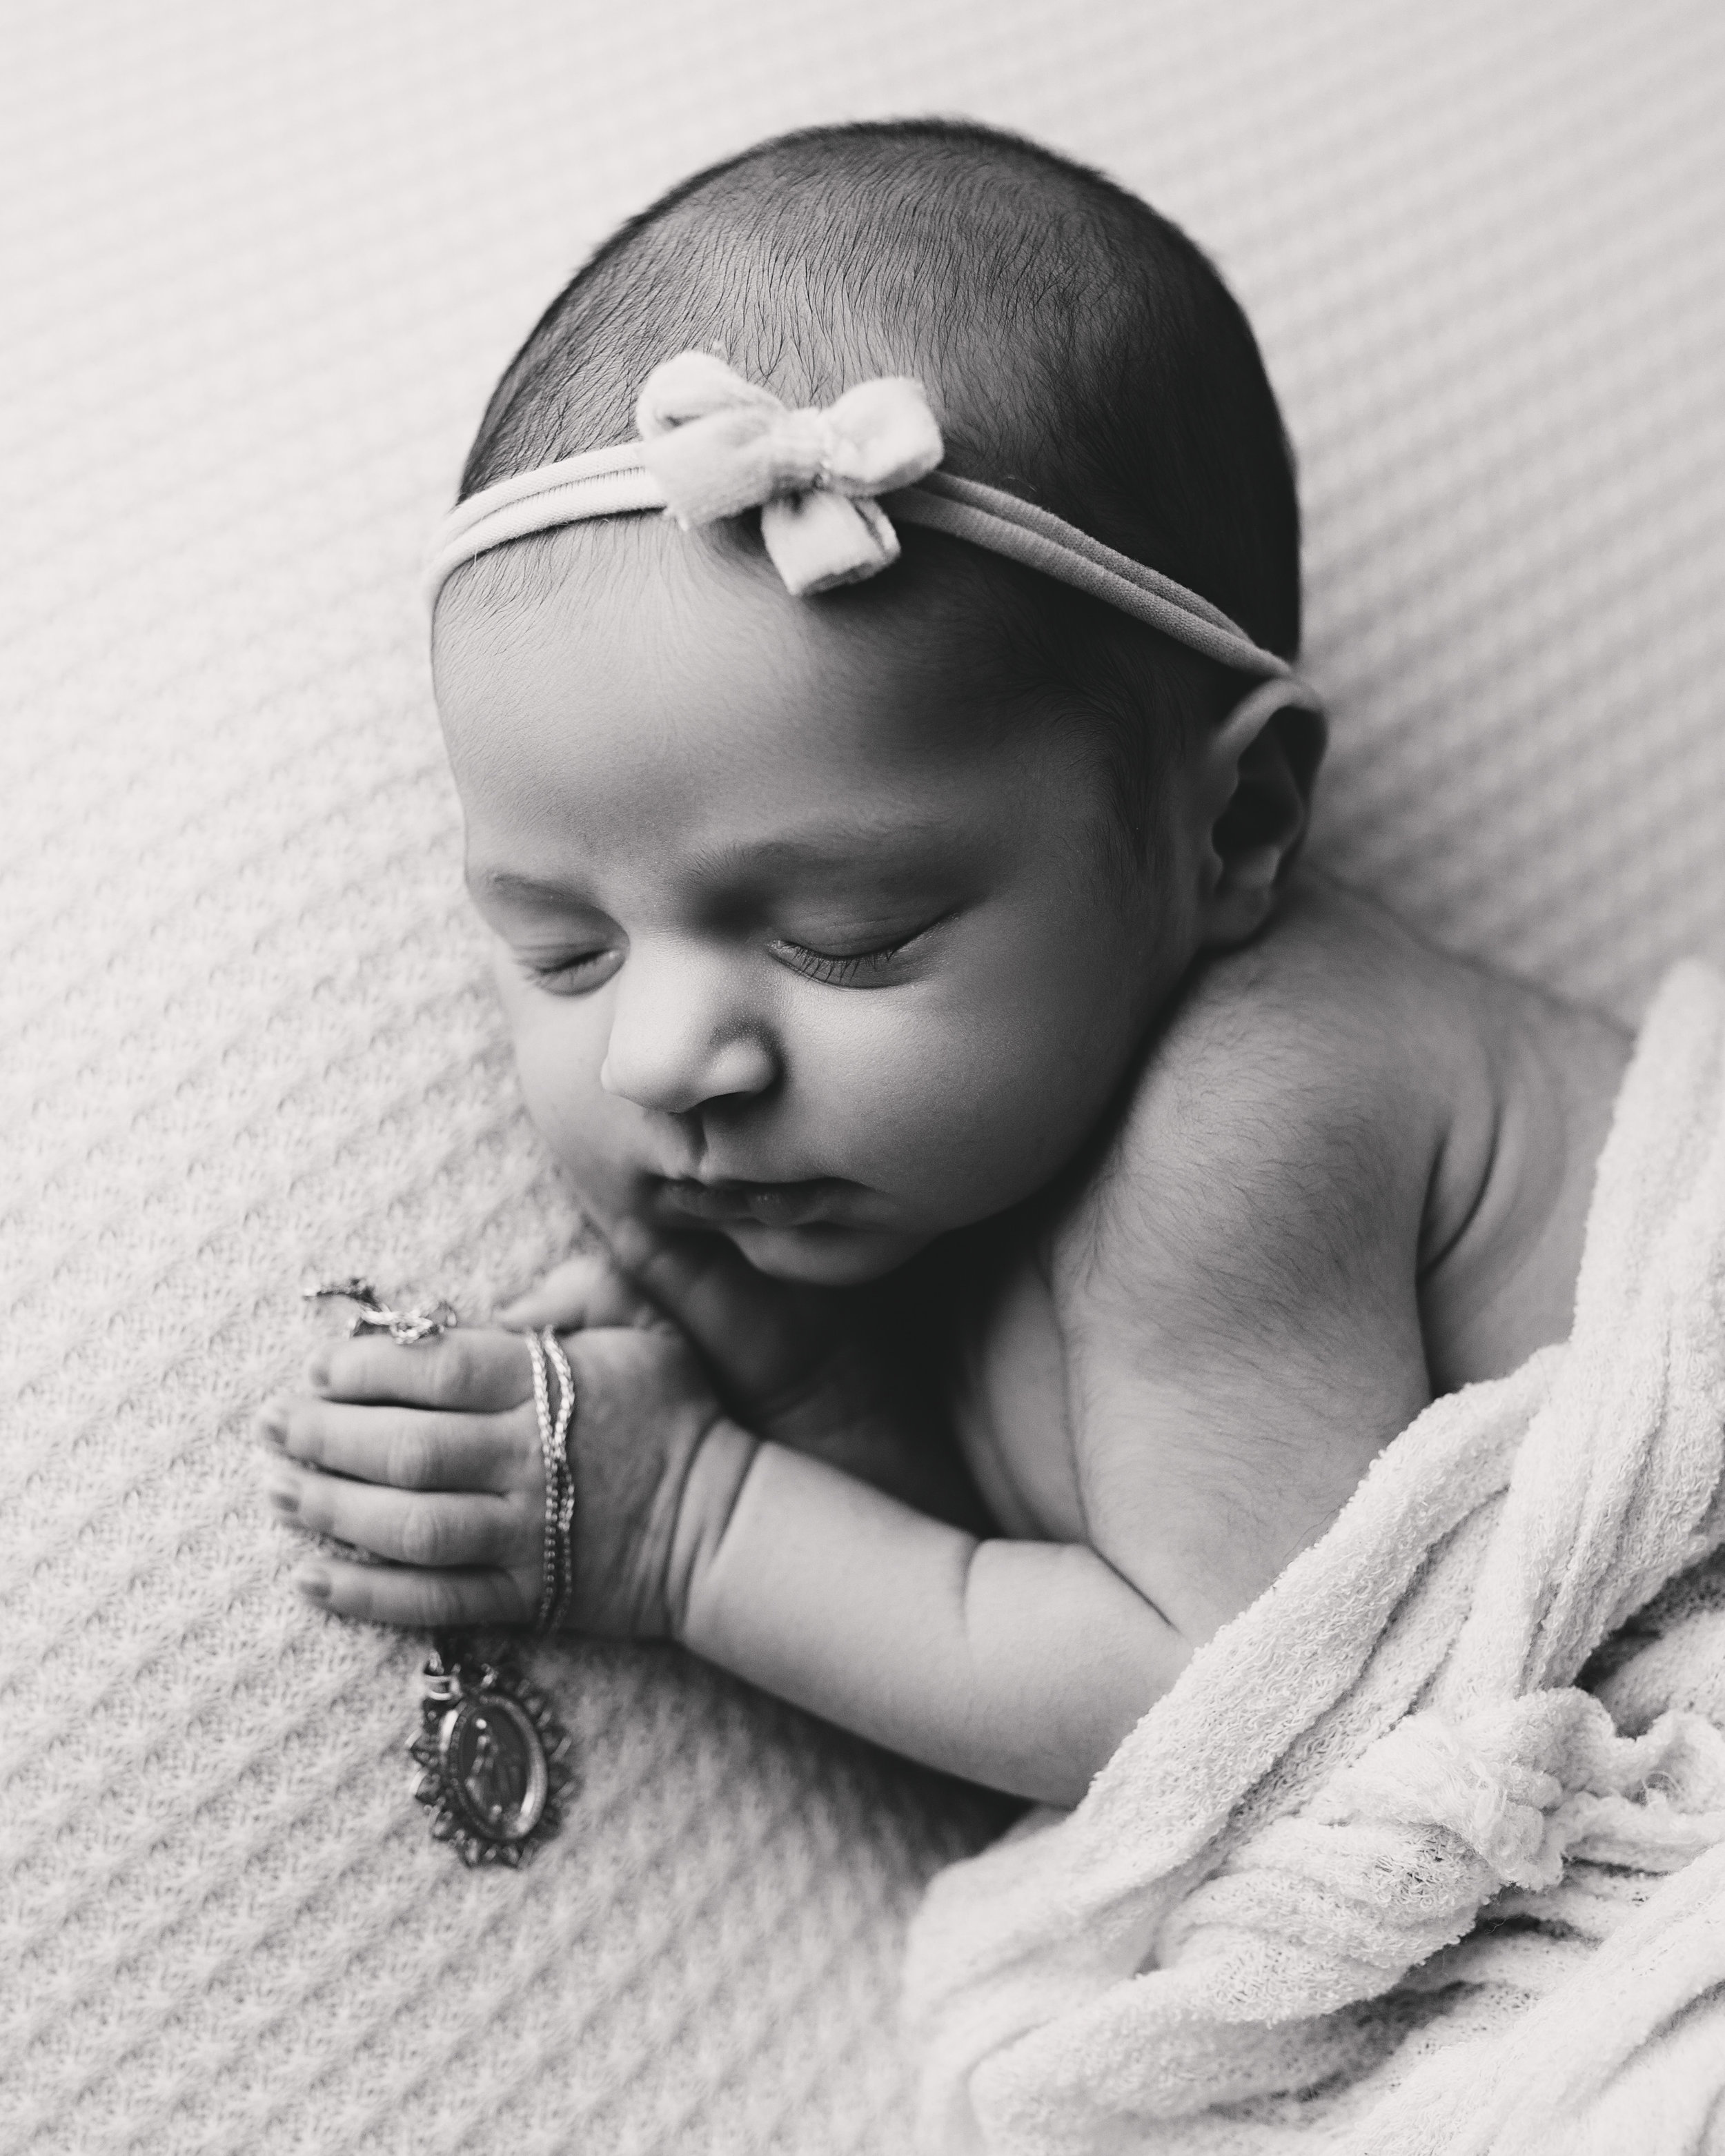 Newborn baby in Morristown NJ photo studio holding great grandmother necklace in black and white